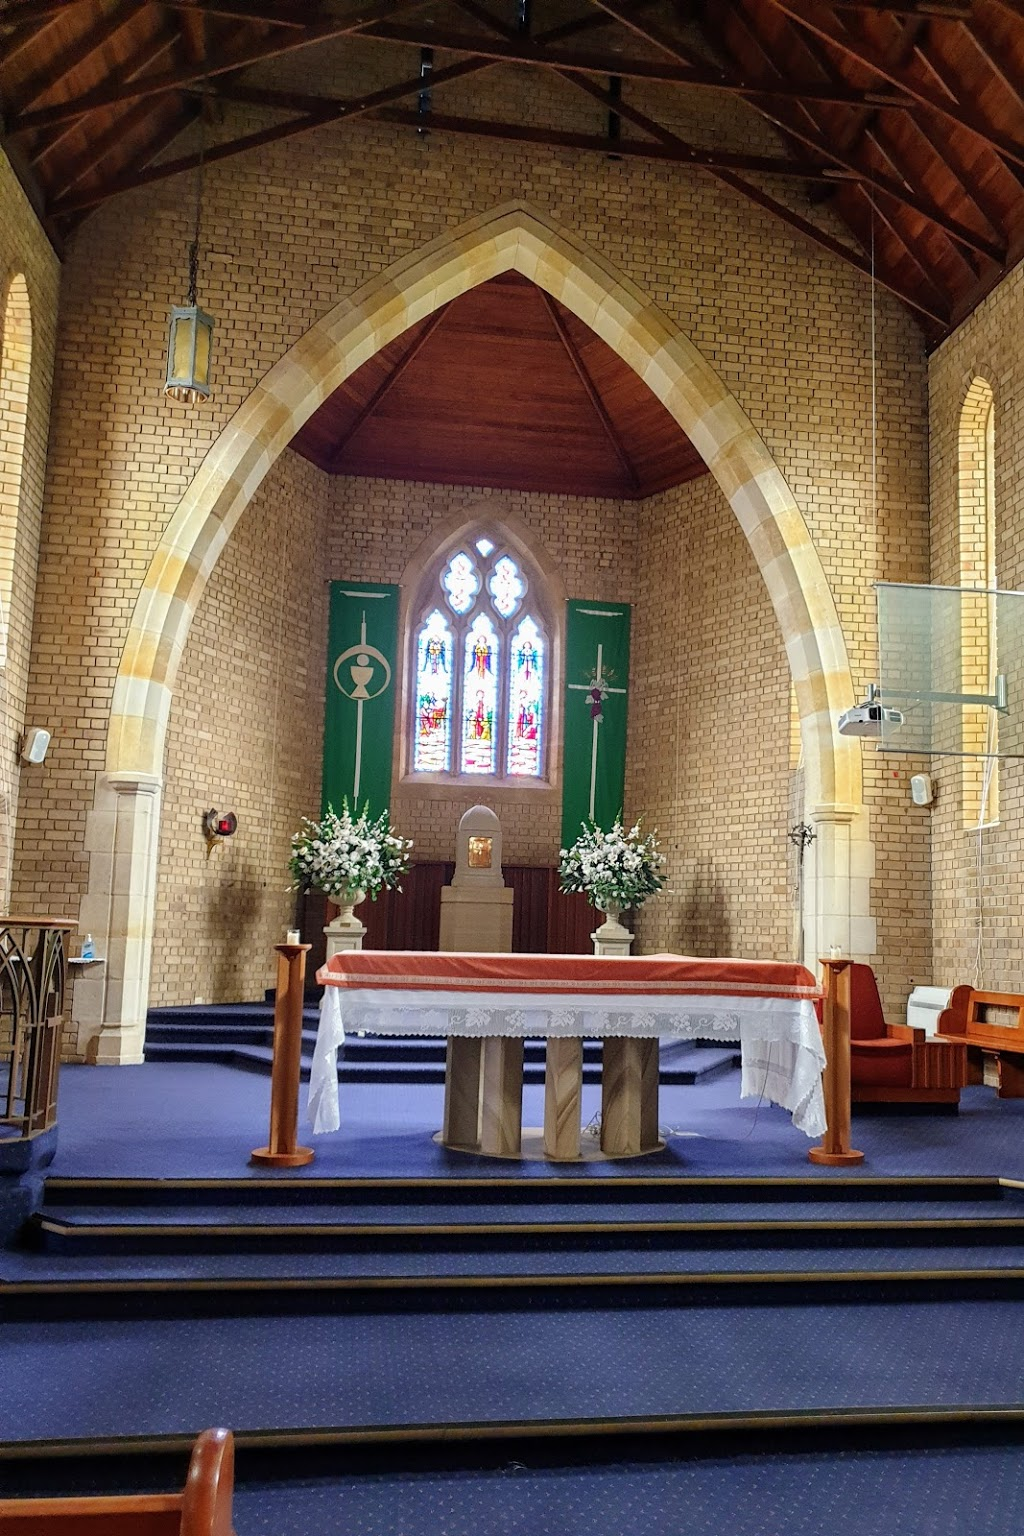 St Charles Borromeo Catholic Church | church | 2a Charles St, Ryde NSW 2112, Australia | 0298072966 OR +61 2 9807 2966